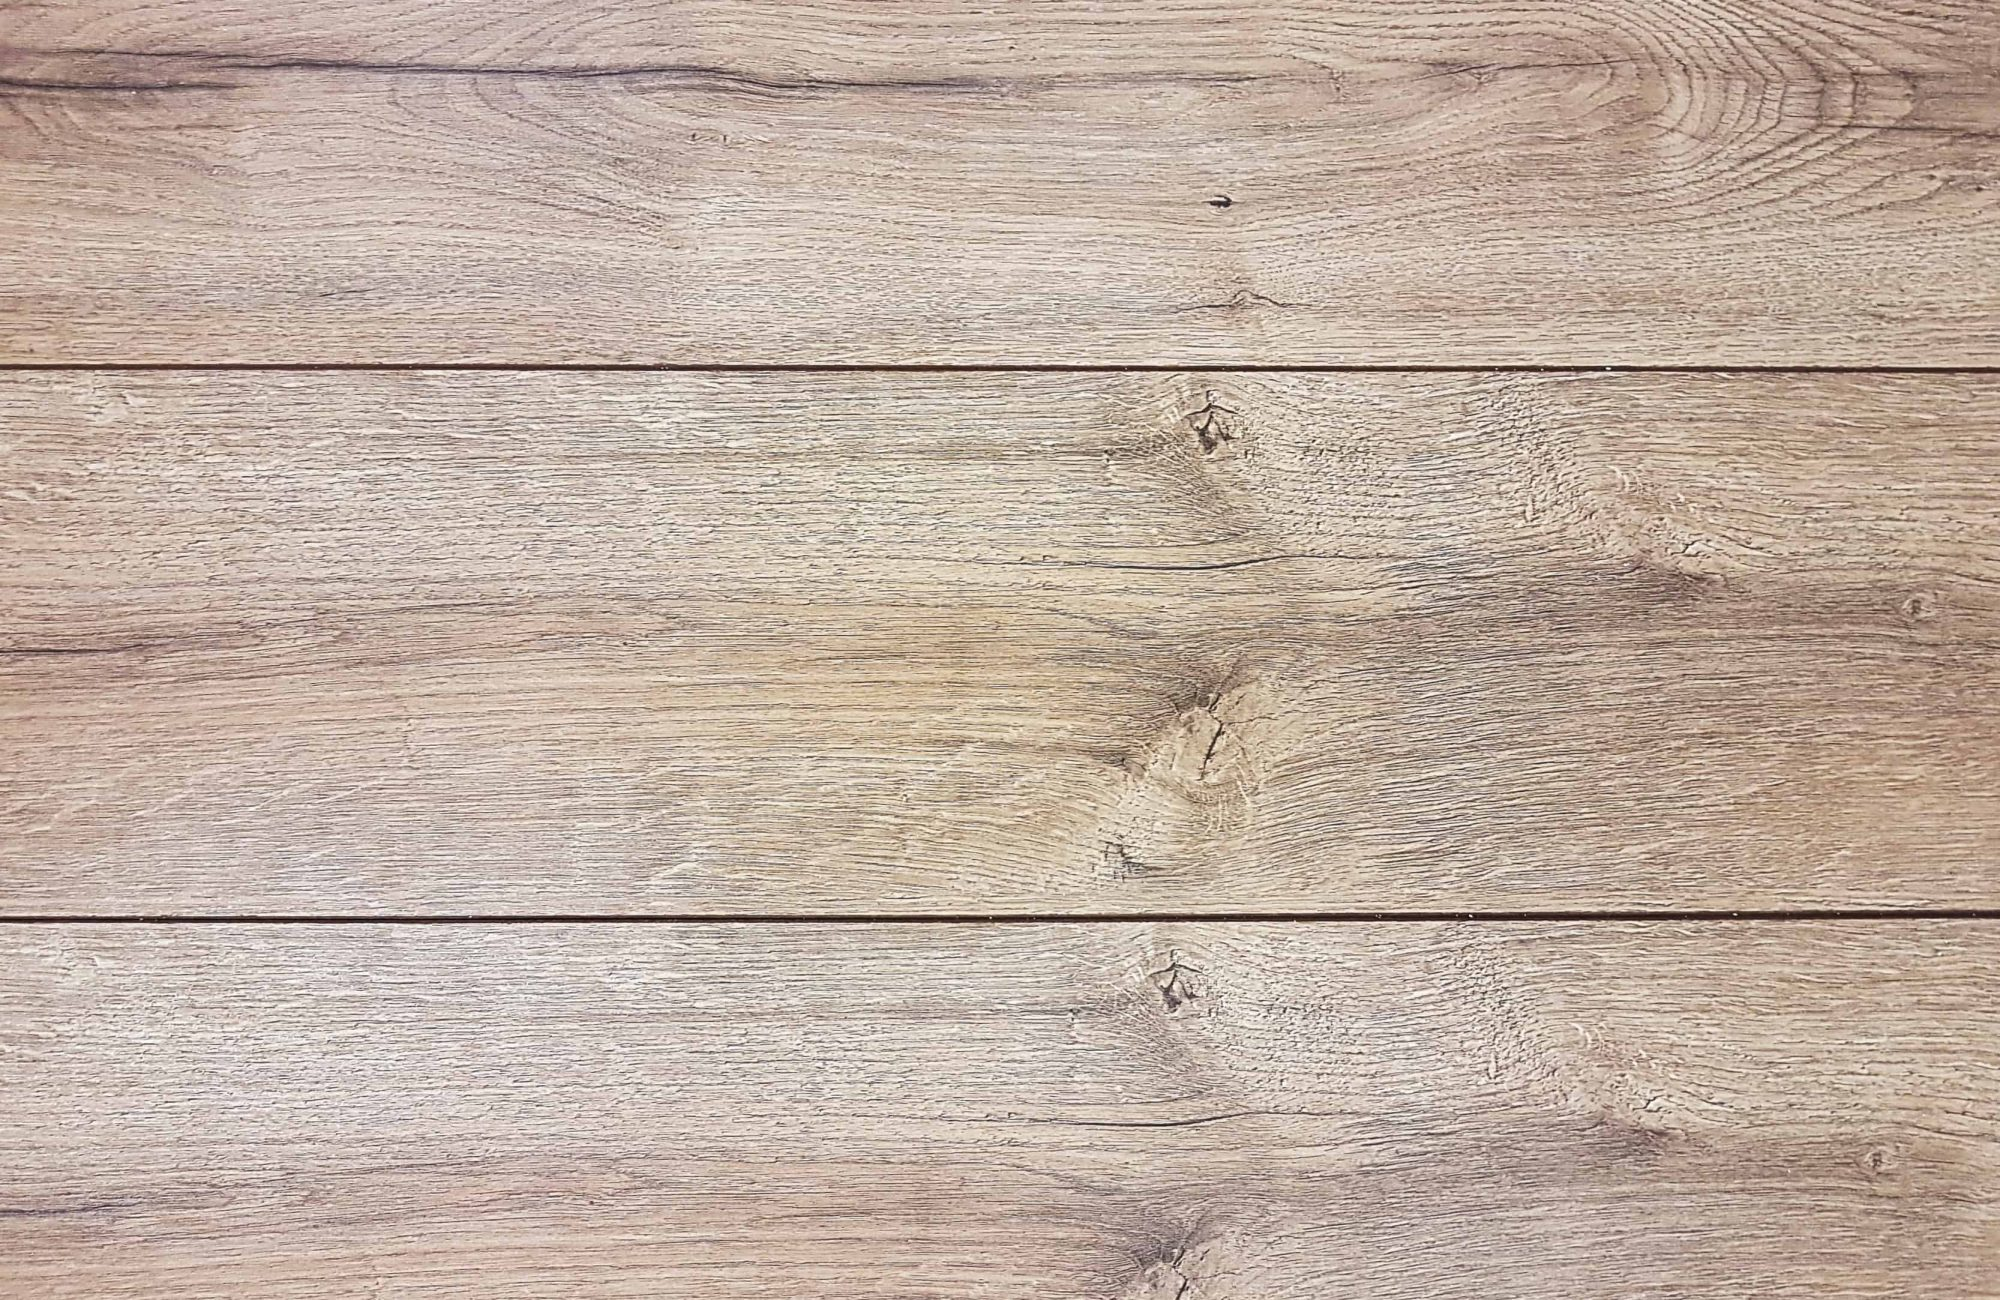 Oak Hardwood Flooring Is It Right For